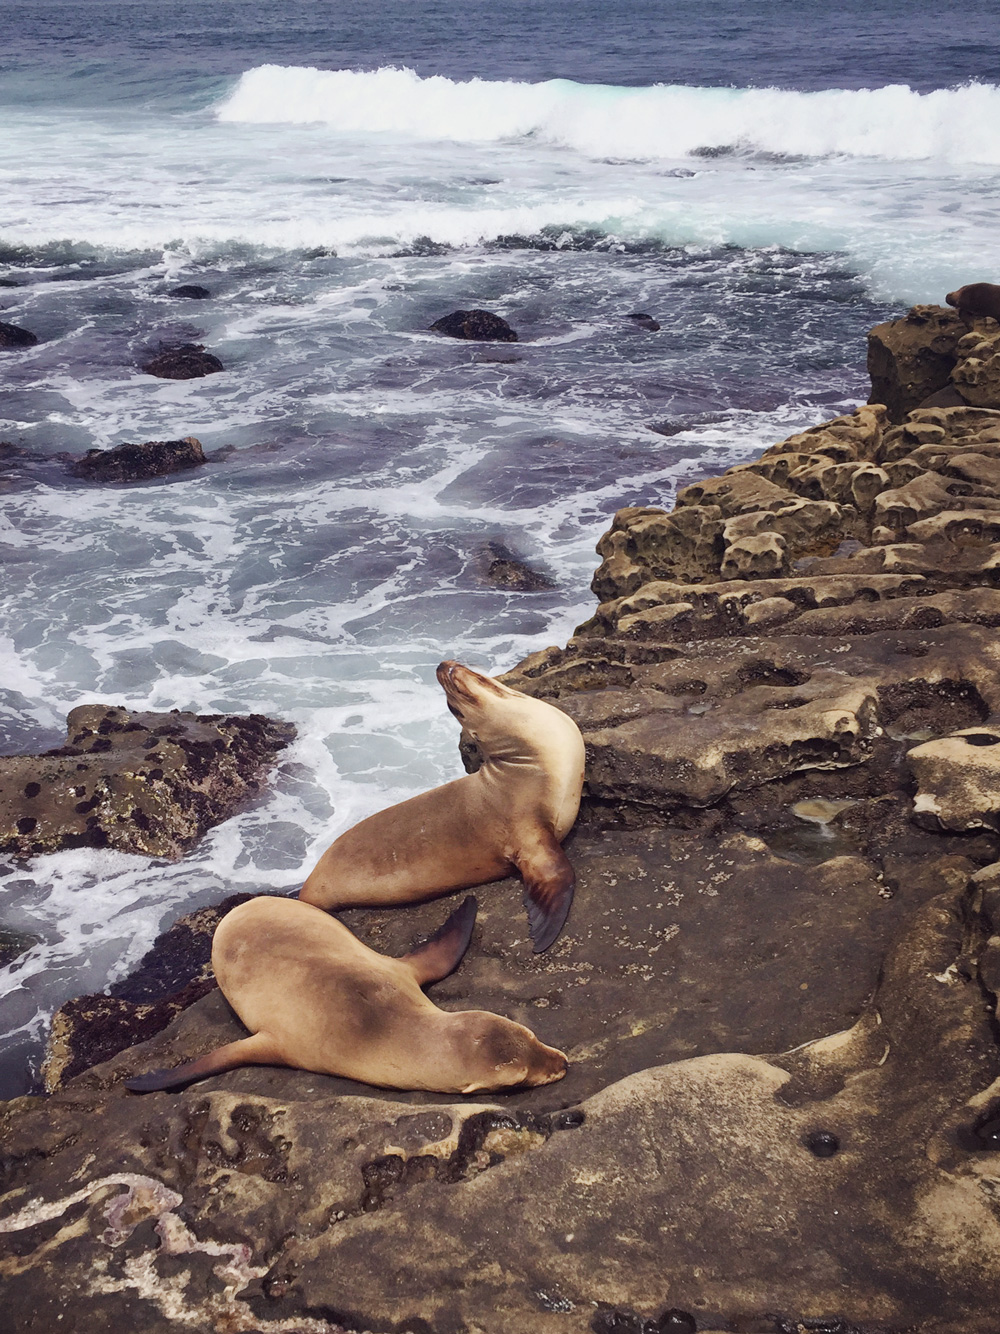 Hundreds Of Sea Lions And Seals Can Be Found Sun Bathing On The Rocks Cliffs Careful Not To Get Too Close As They Are Very Territorial Will Bite